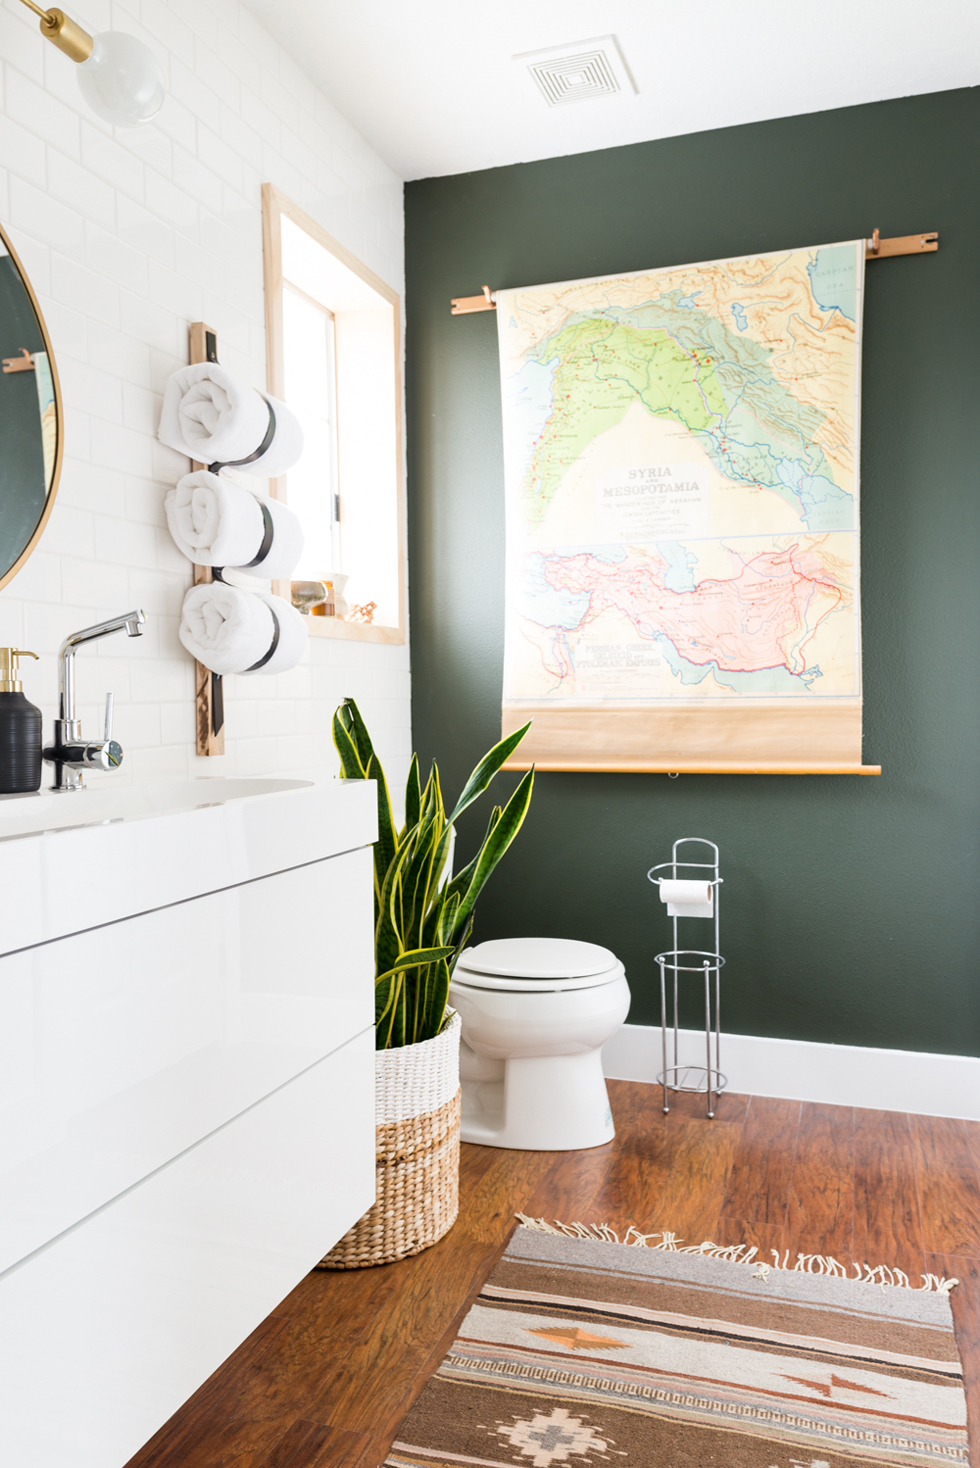 Wall Paint Colors Picking Paint Colors The Mistake Proof Way